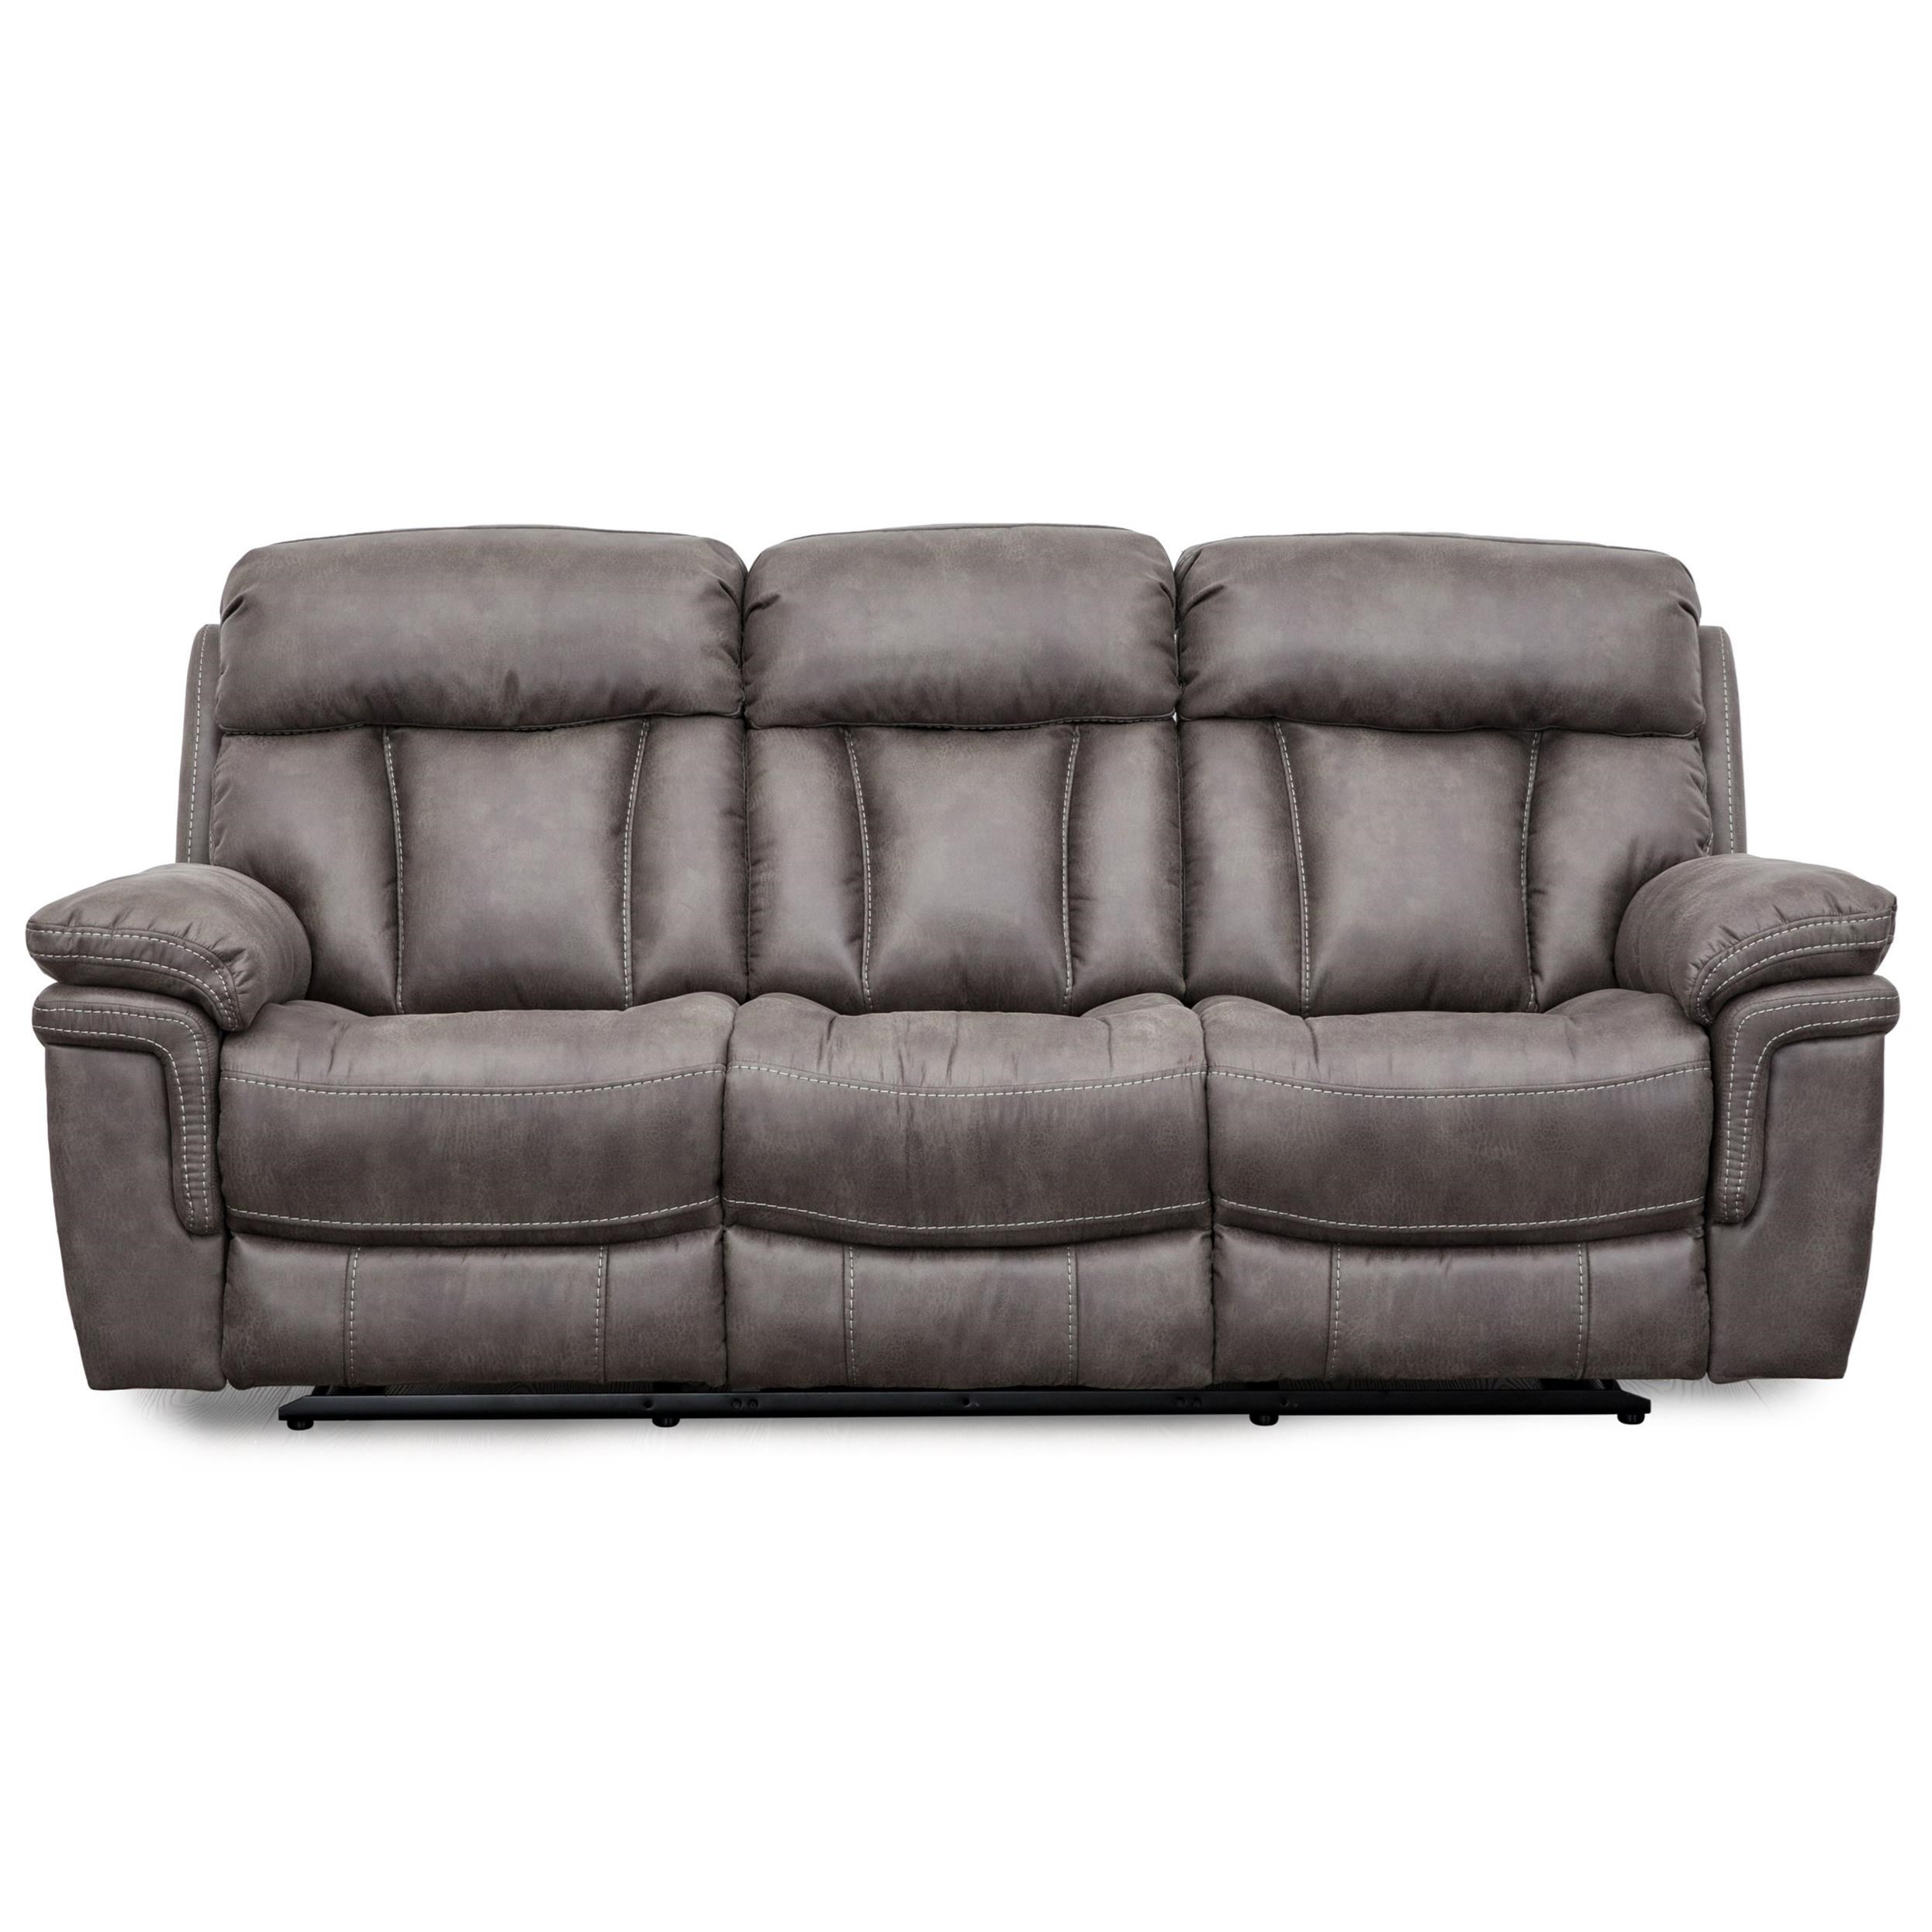 9597 Wallhugger Dual Reclining Sofa by Cheers at Household Furniture